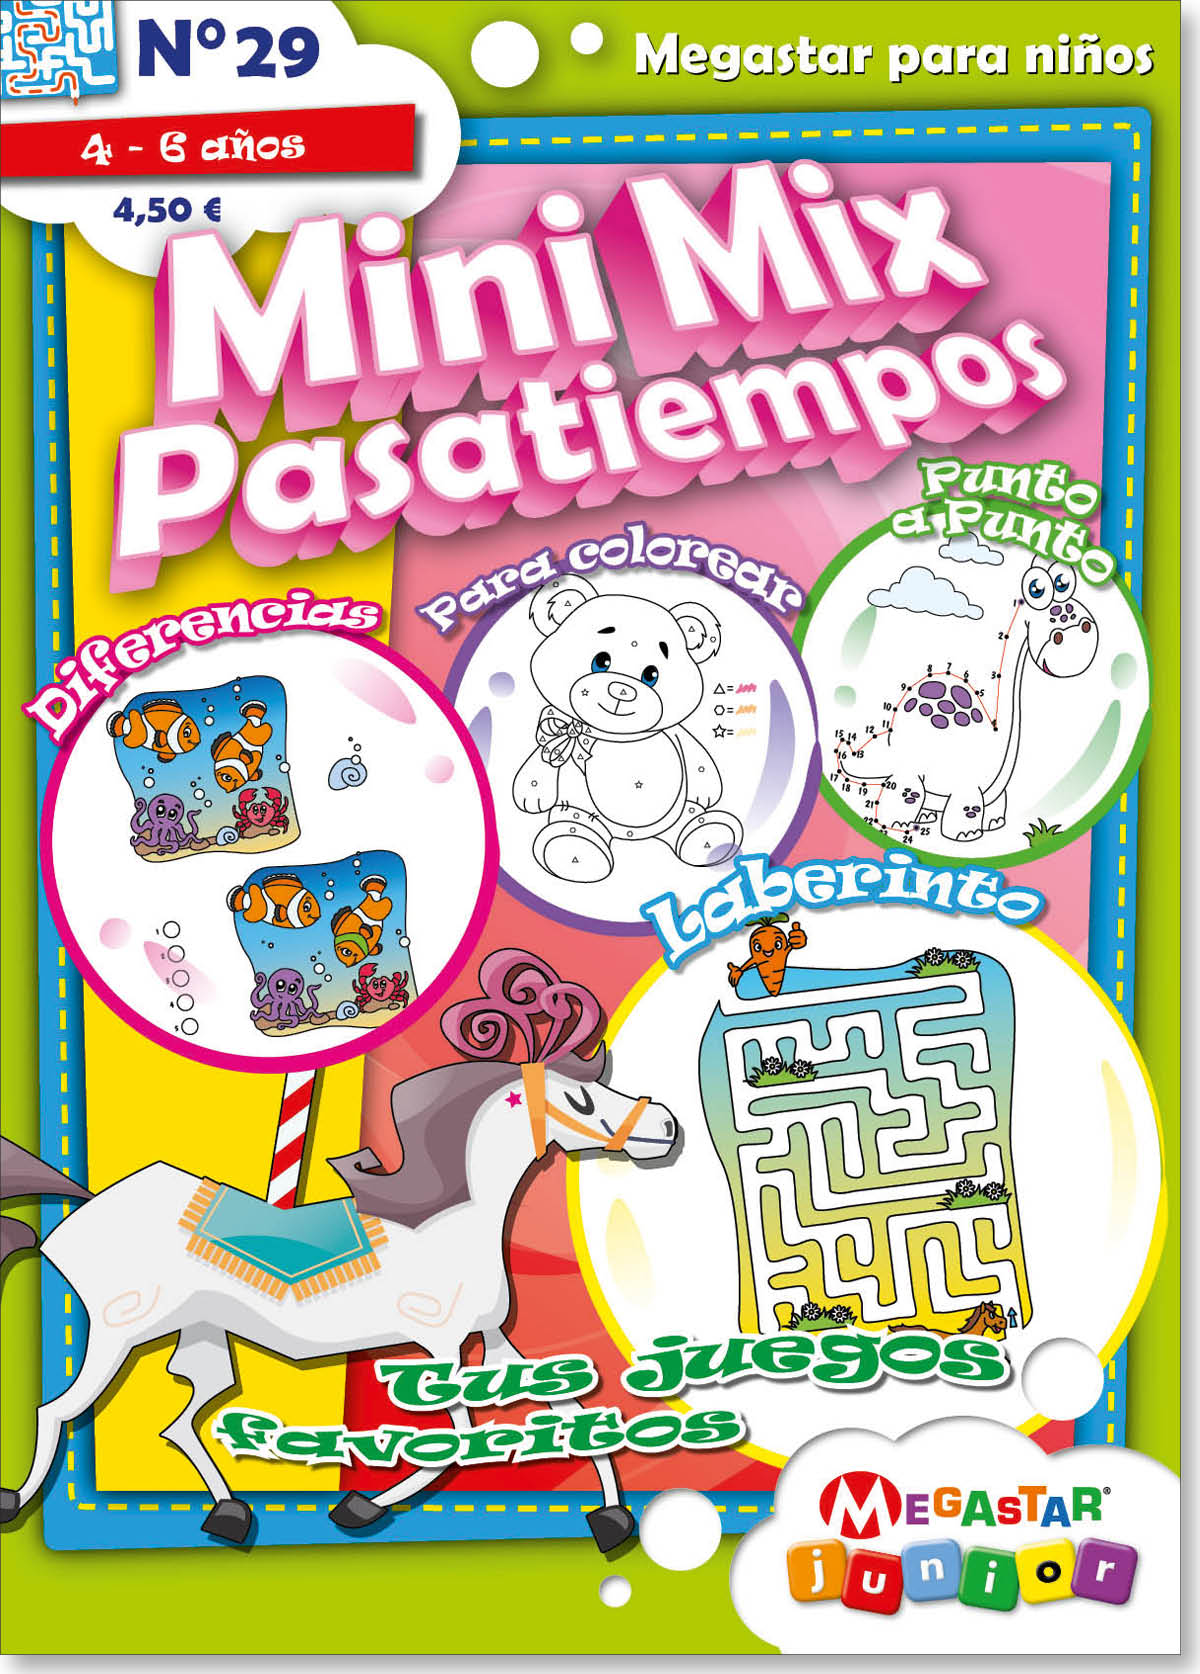 MINI MIX PASATIEMPOS